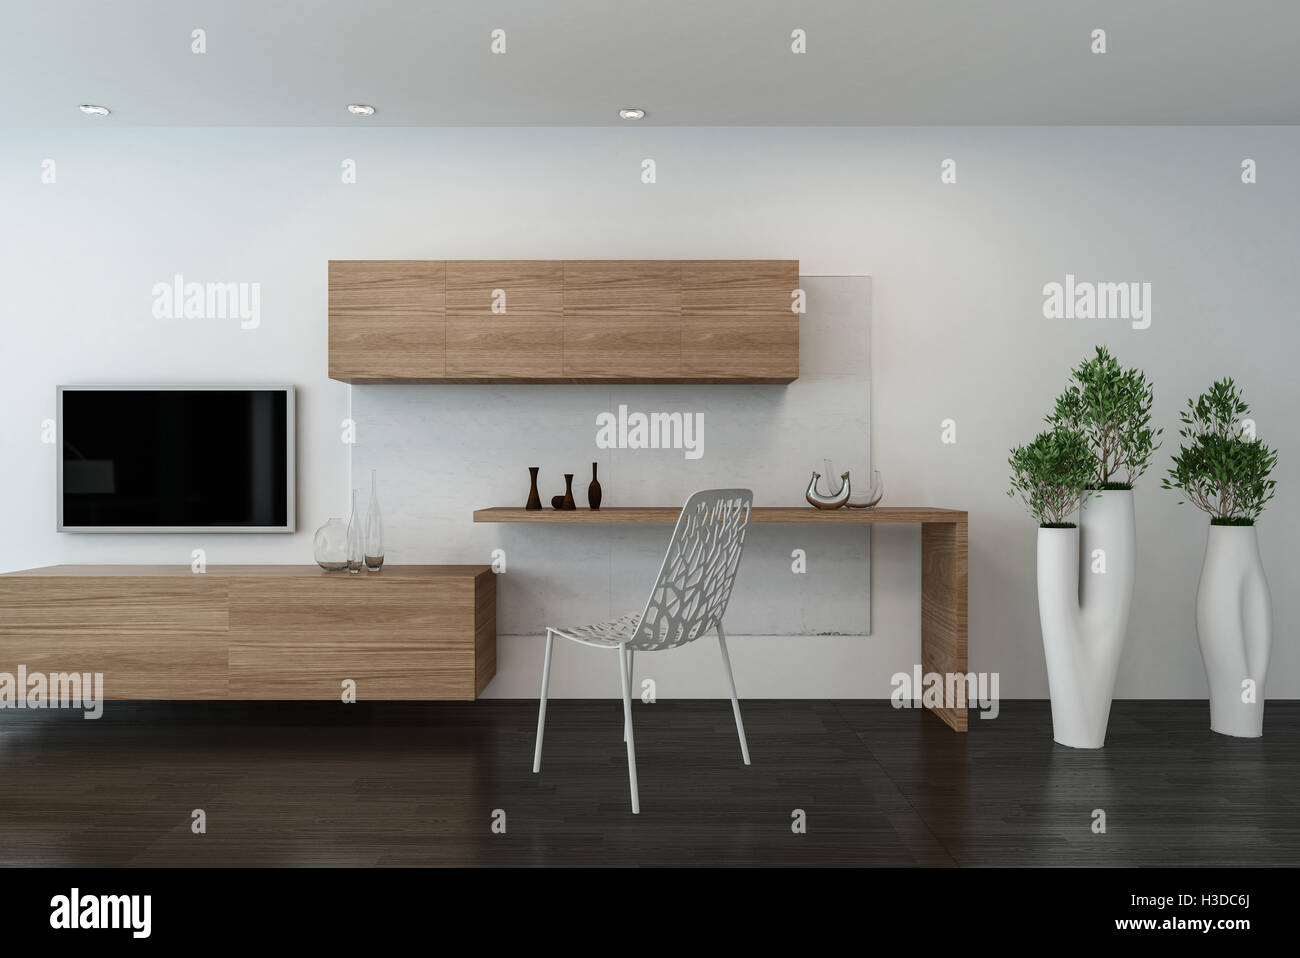 Hipster Wooden Writing Table And Chair With Wall Mounted Cabinets And  Television On A White Wall With Elegant Potted Plants In Tall Containers,  3d Rendering